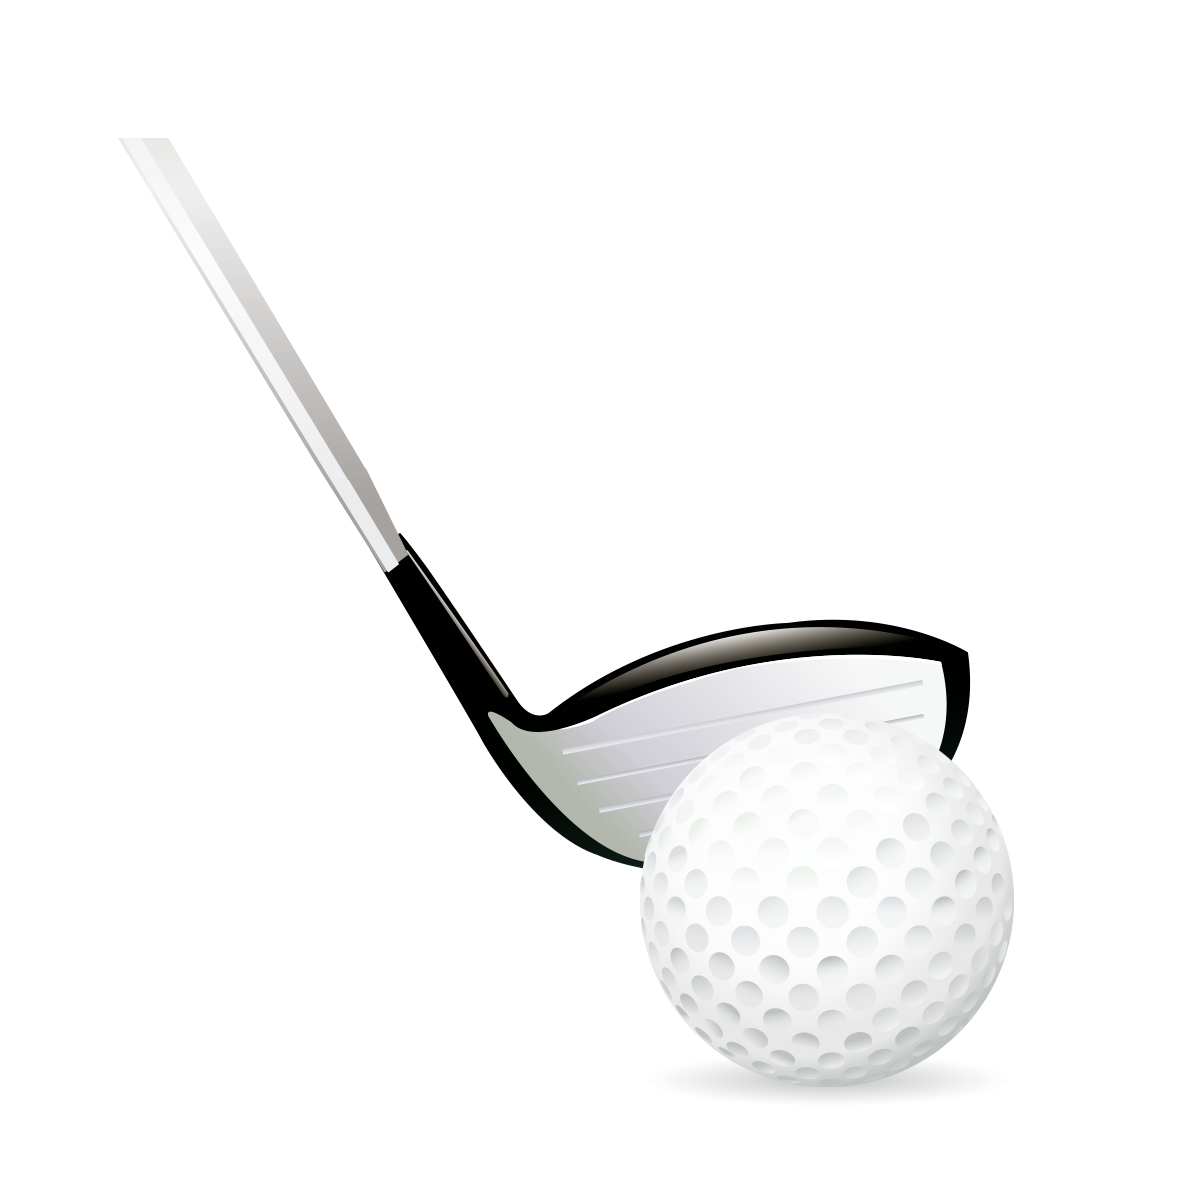 Golf club and ball png. Baseball bat transprent free